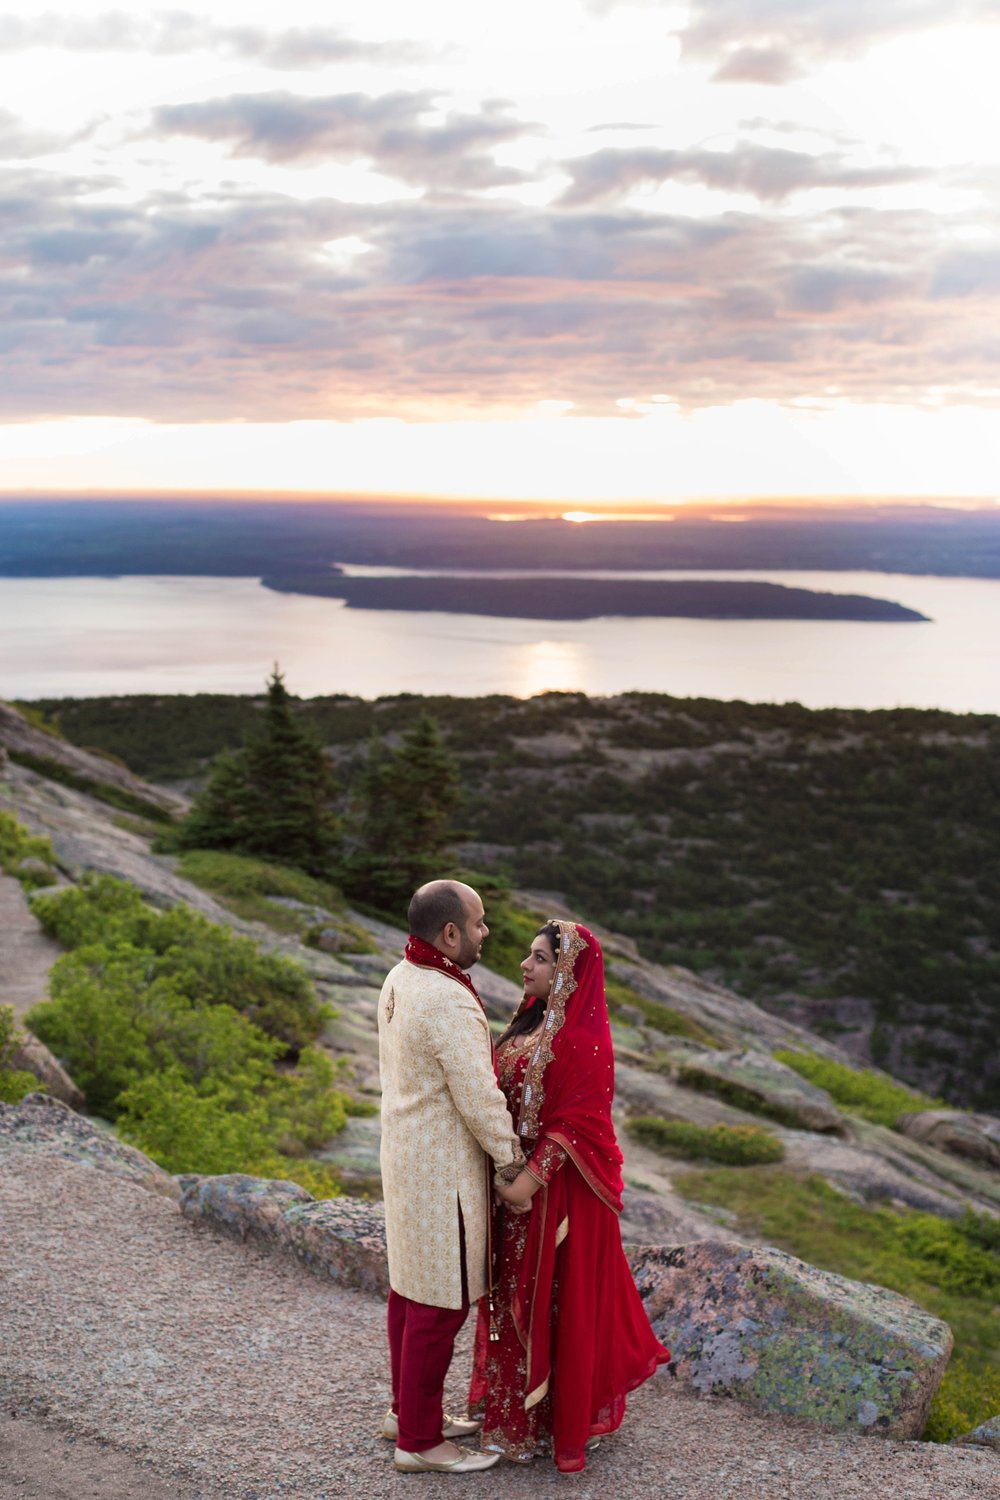 Wedding Photos in Acadia